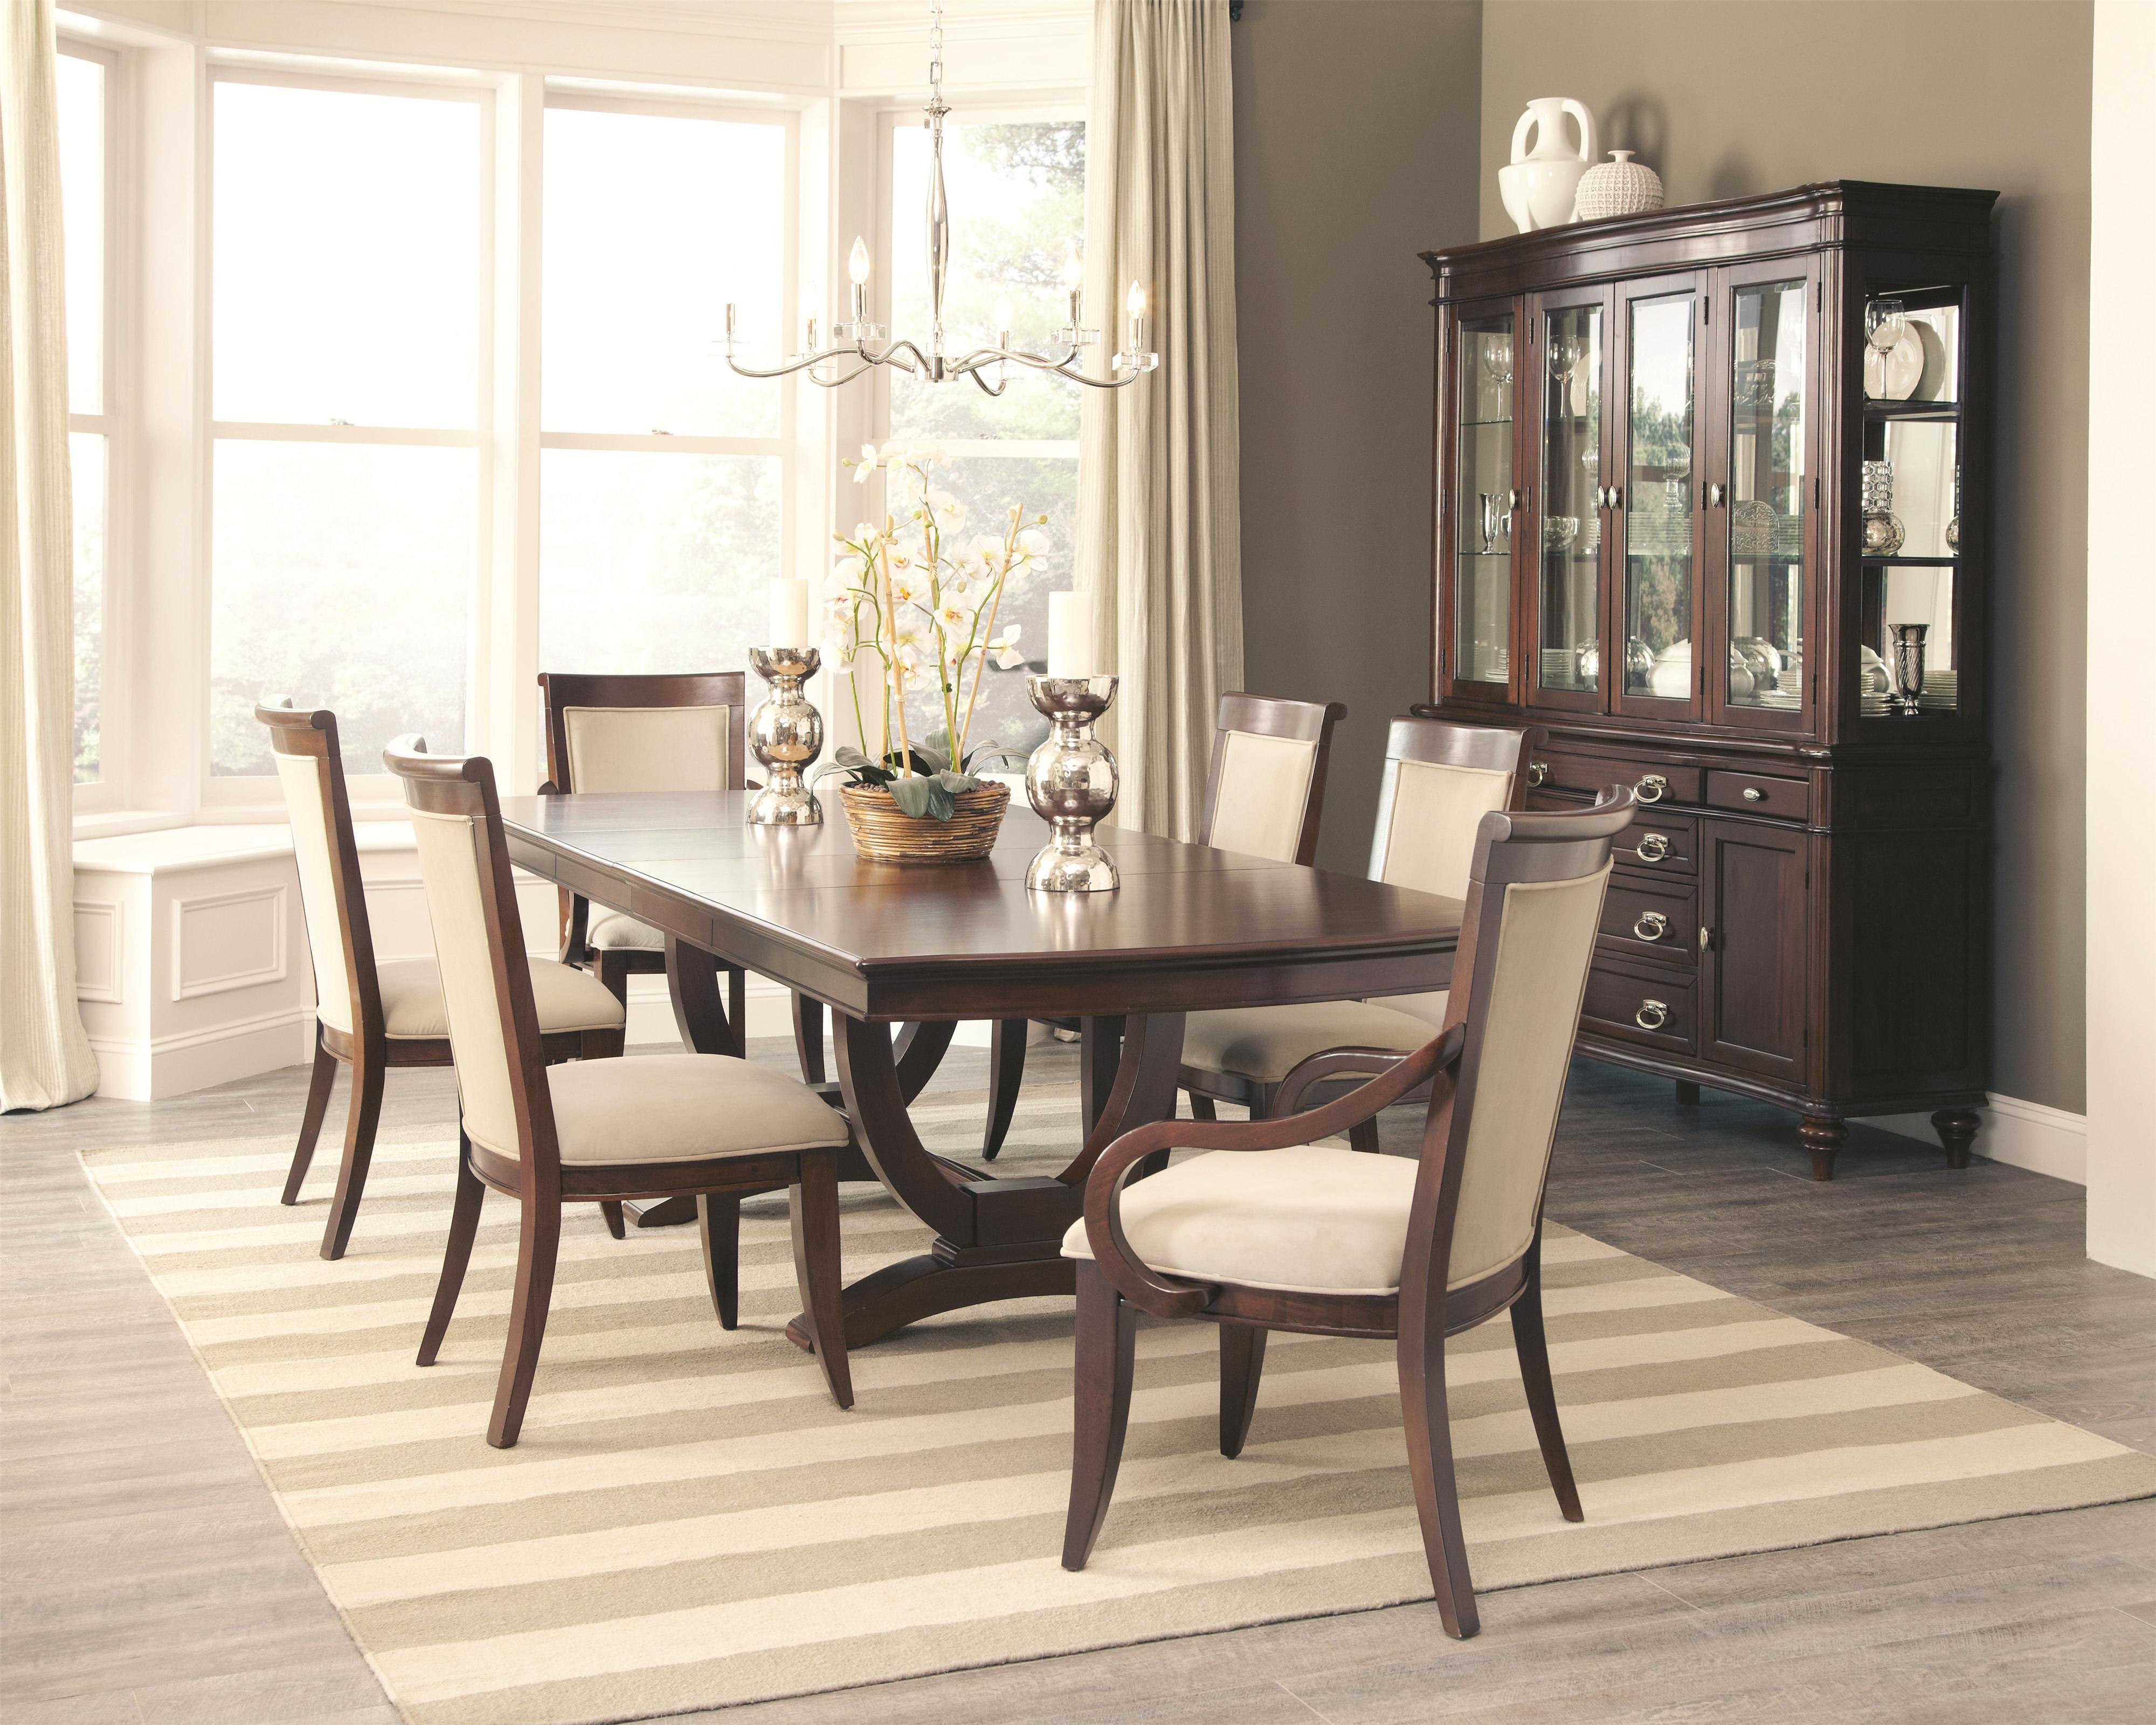 Coaster Alyssa Formal Dining Room Group - Item Number 10544 Dining Room Group 1 & Coaster Alyssa Formal Dining Room Group | Value City Furniture ...